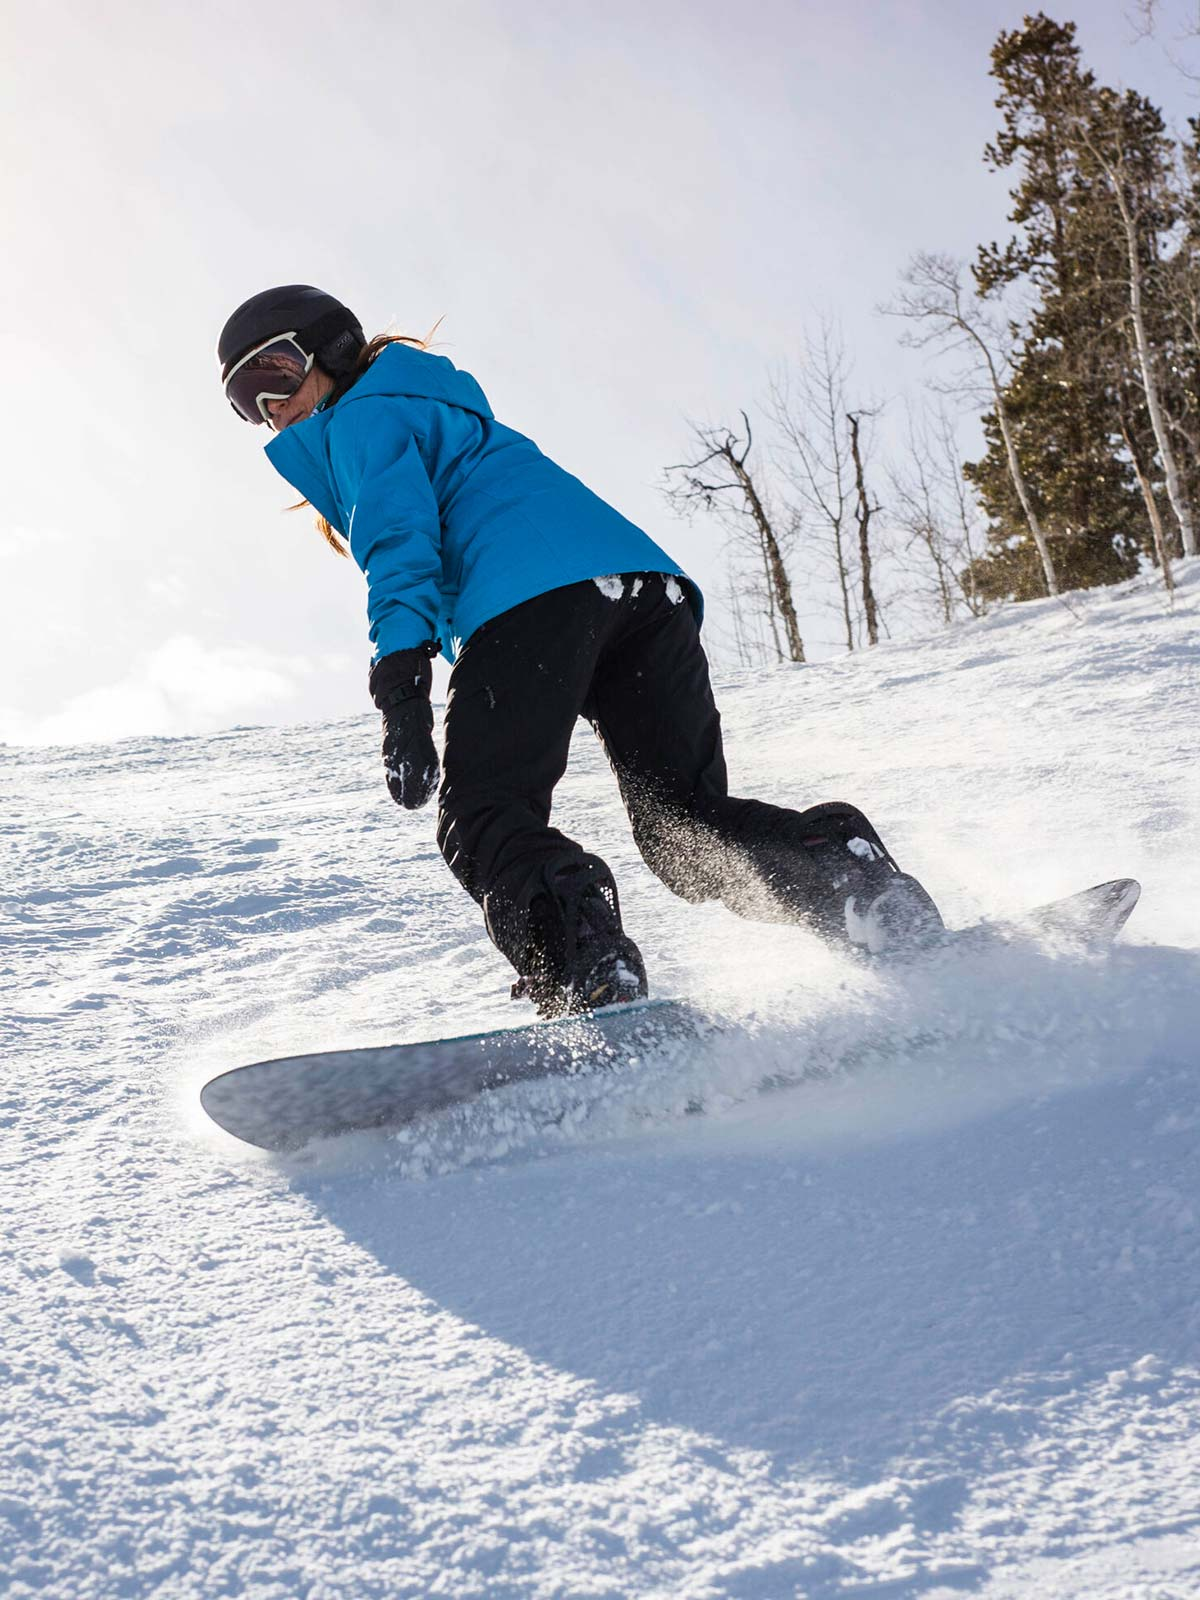 Woman in a blue jacket snowboarding down a slope